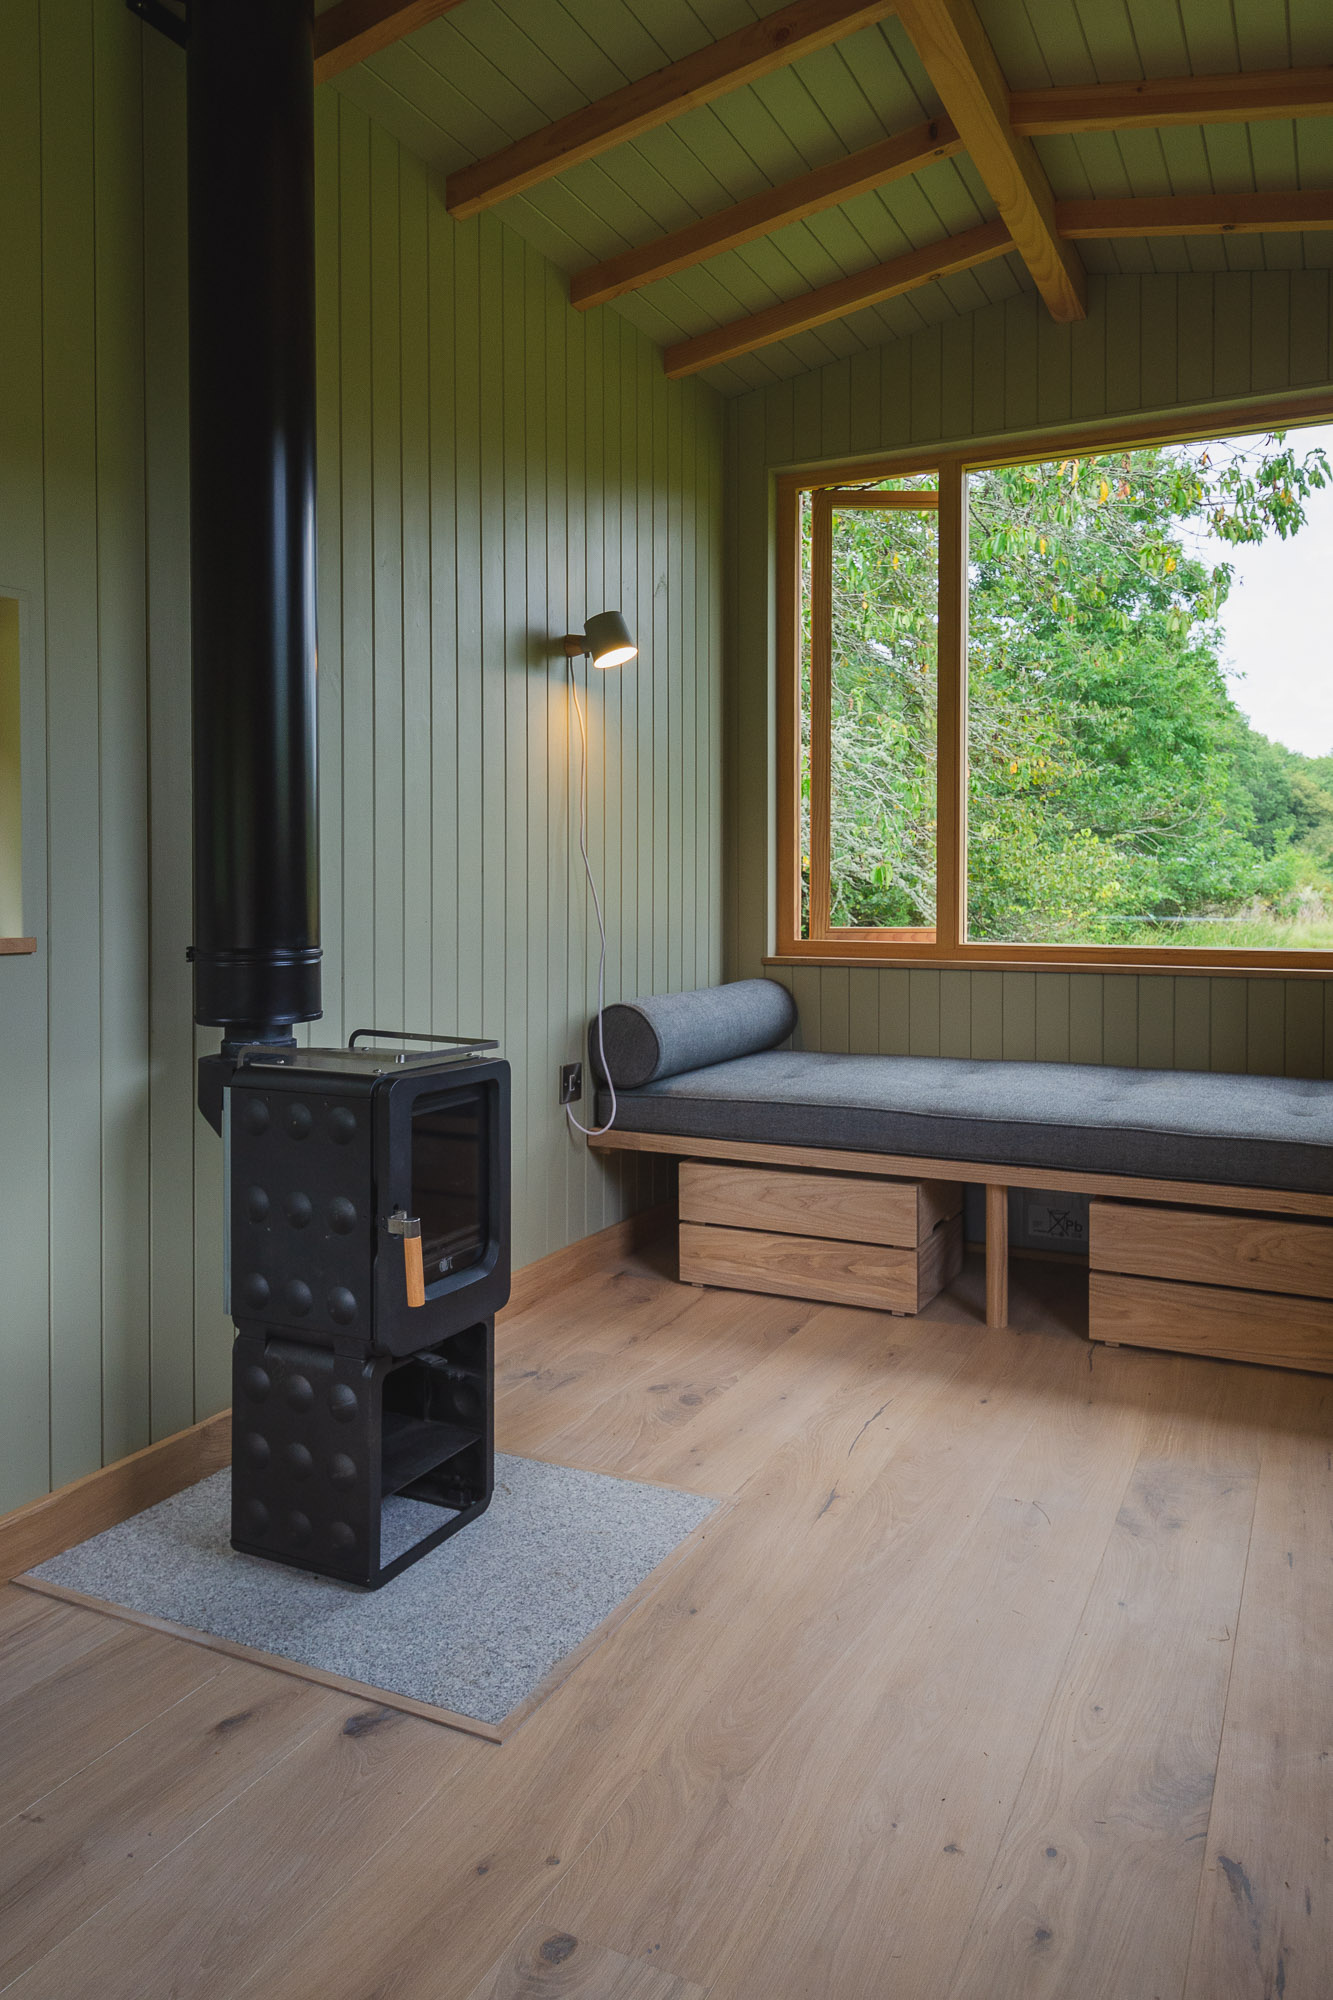 off grid tiny wooden nomad cabin with ash daybed and wood burning stove, engineered oak floor and large windows